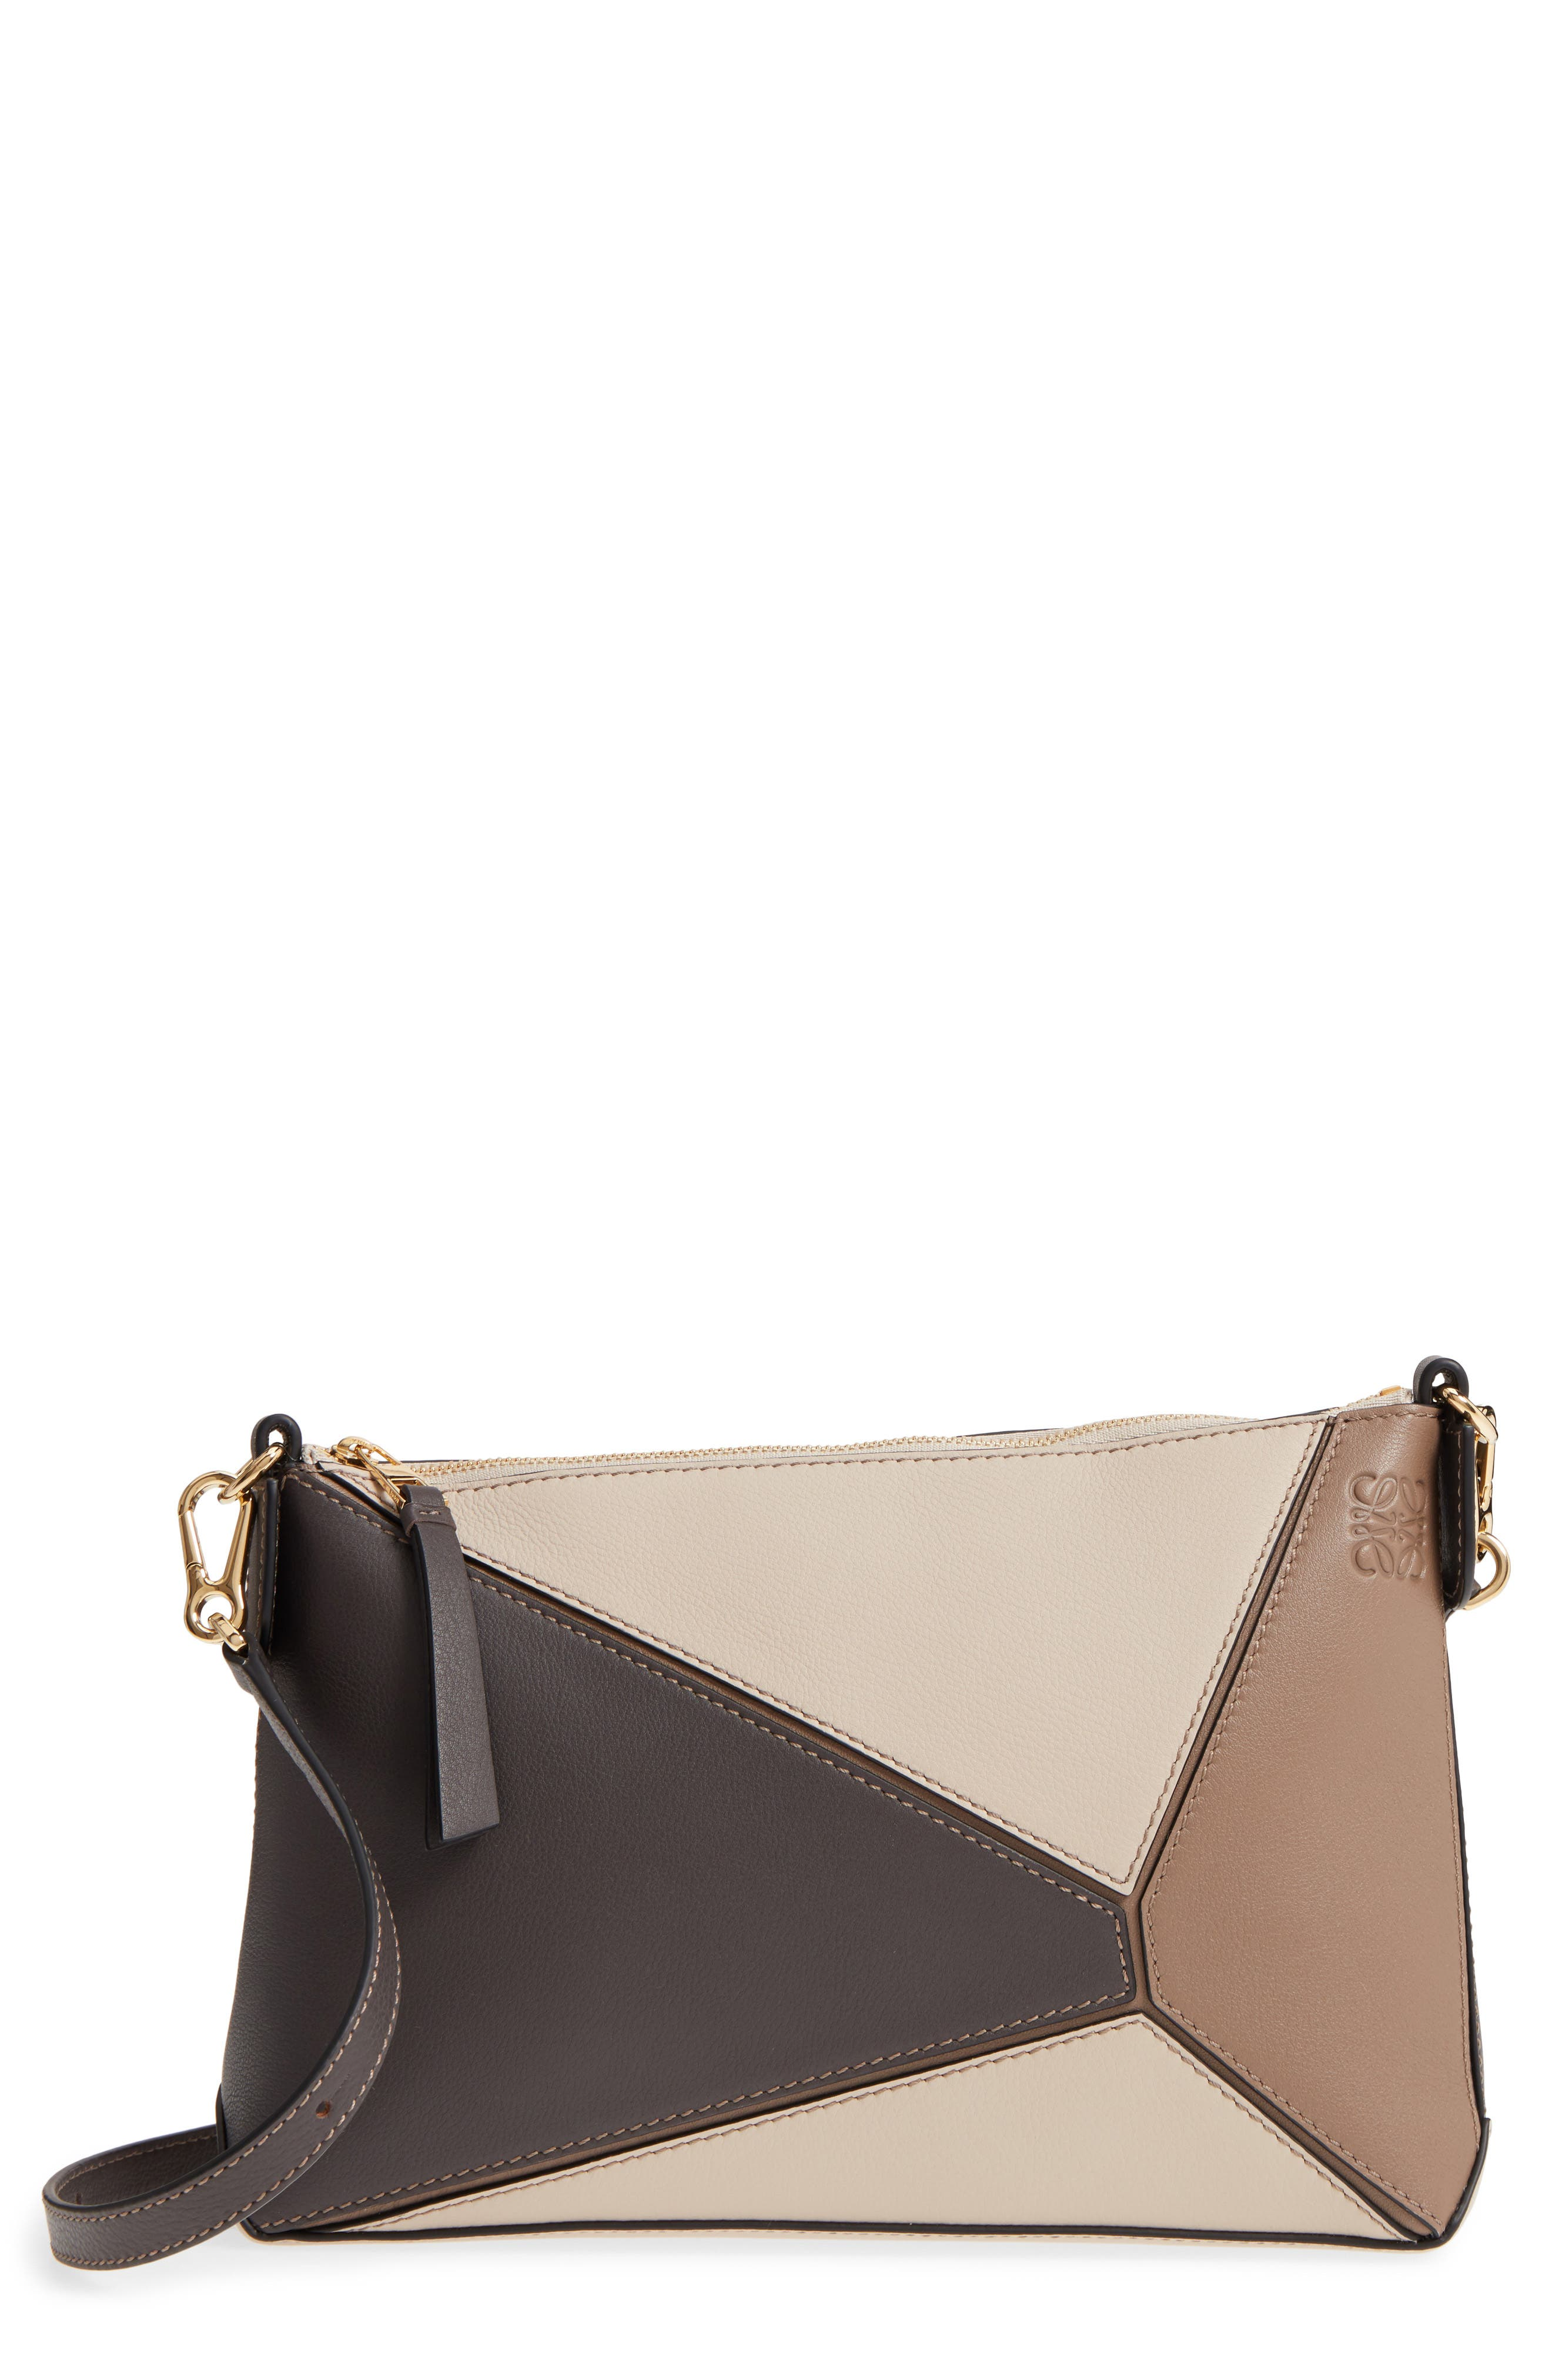 Main Image - Loewe Mini Puzzle Calfskin Leather Crossbody Bag